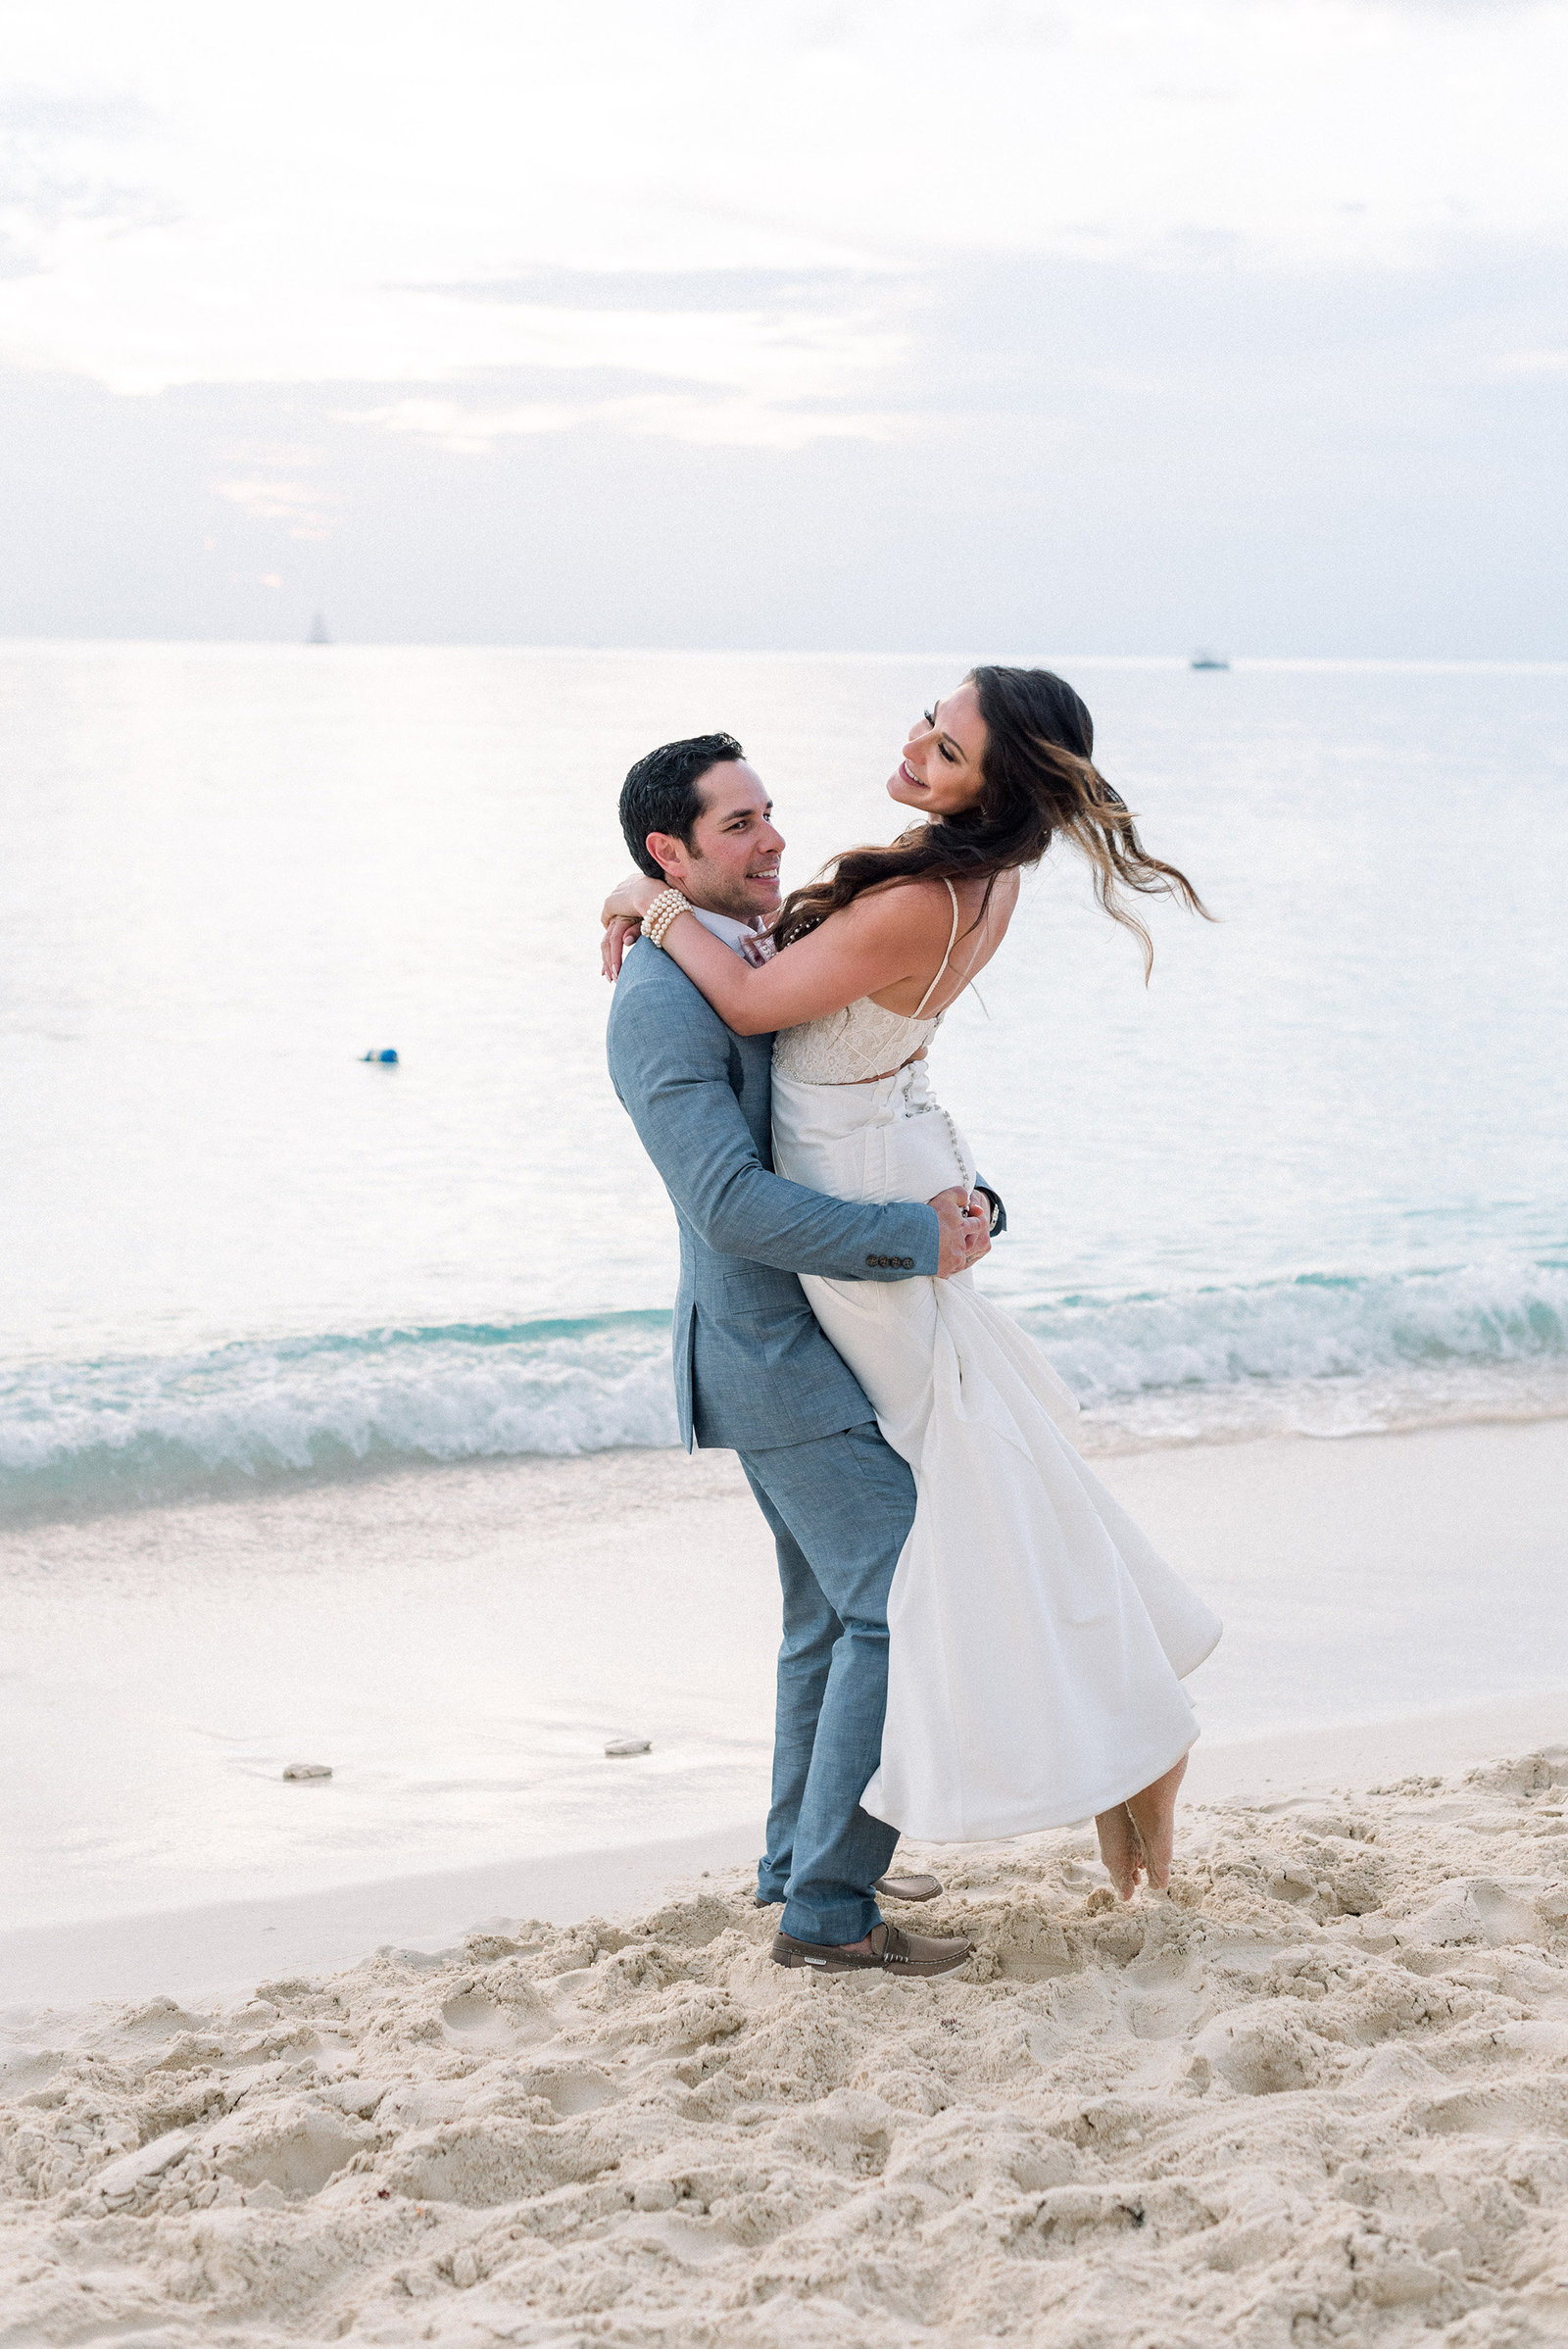 20180512-Pura-Soul-Photo-Ritz-Grand-Cayman-Wedding-123